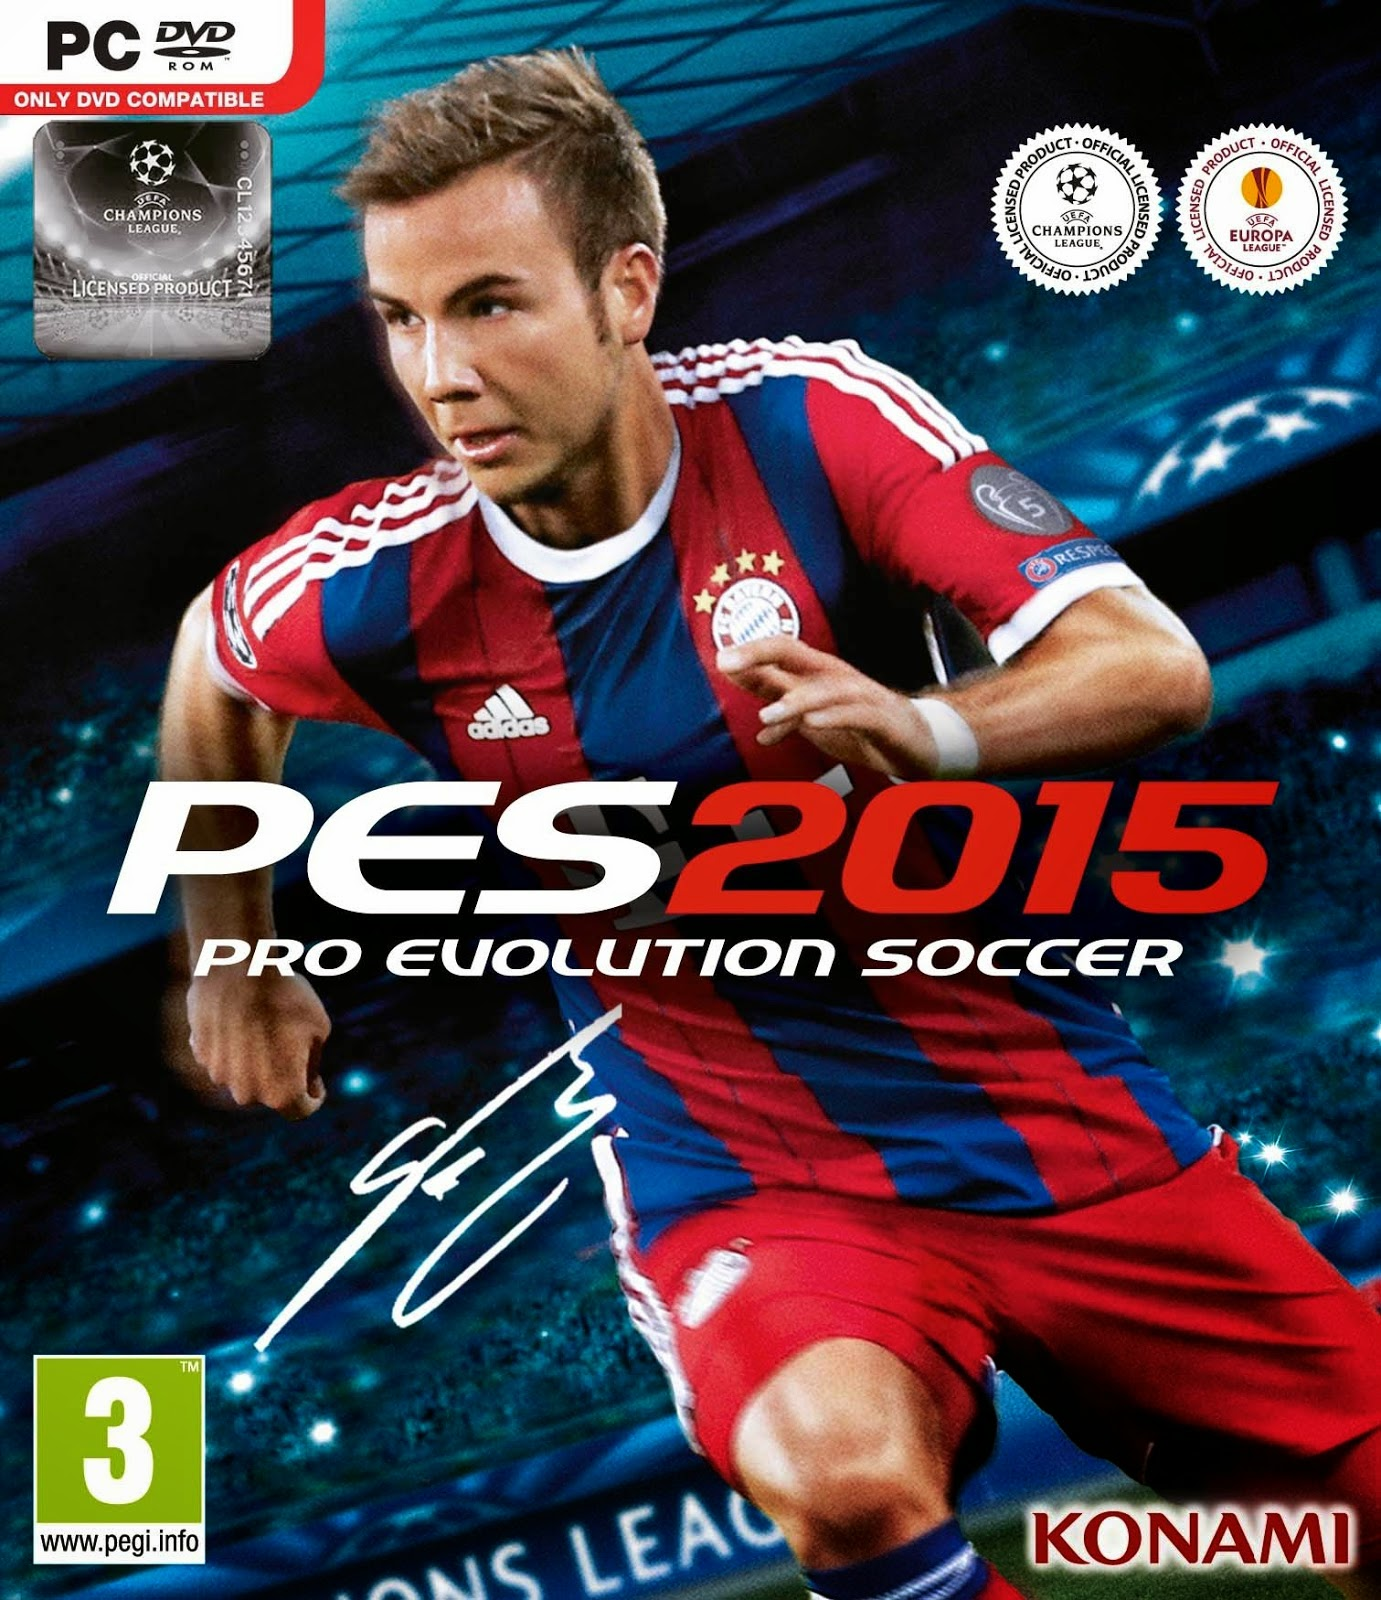 Pro Evolution Soccer (PES) 2015 Cover Game Image